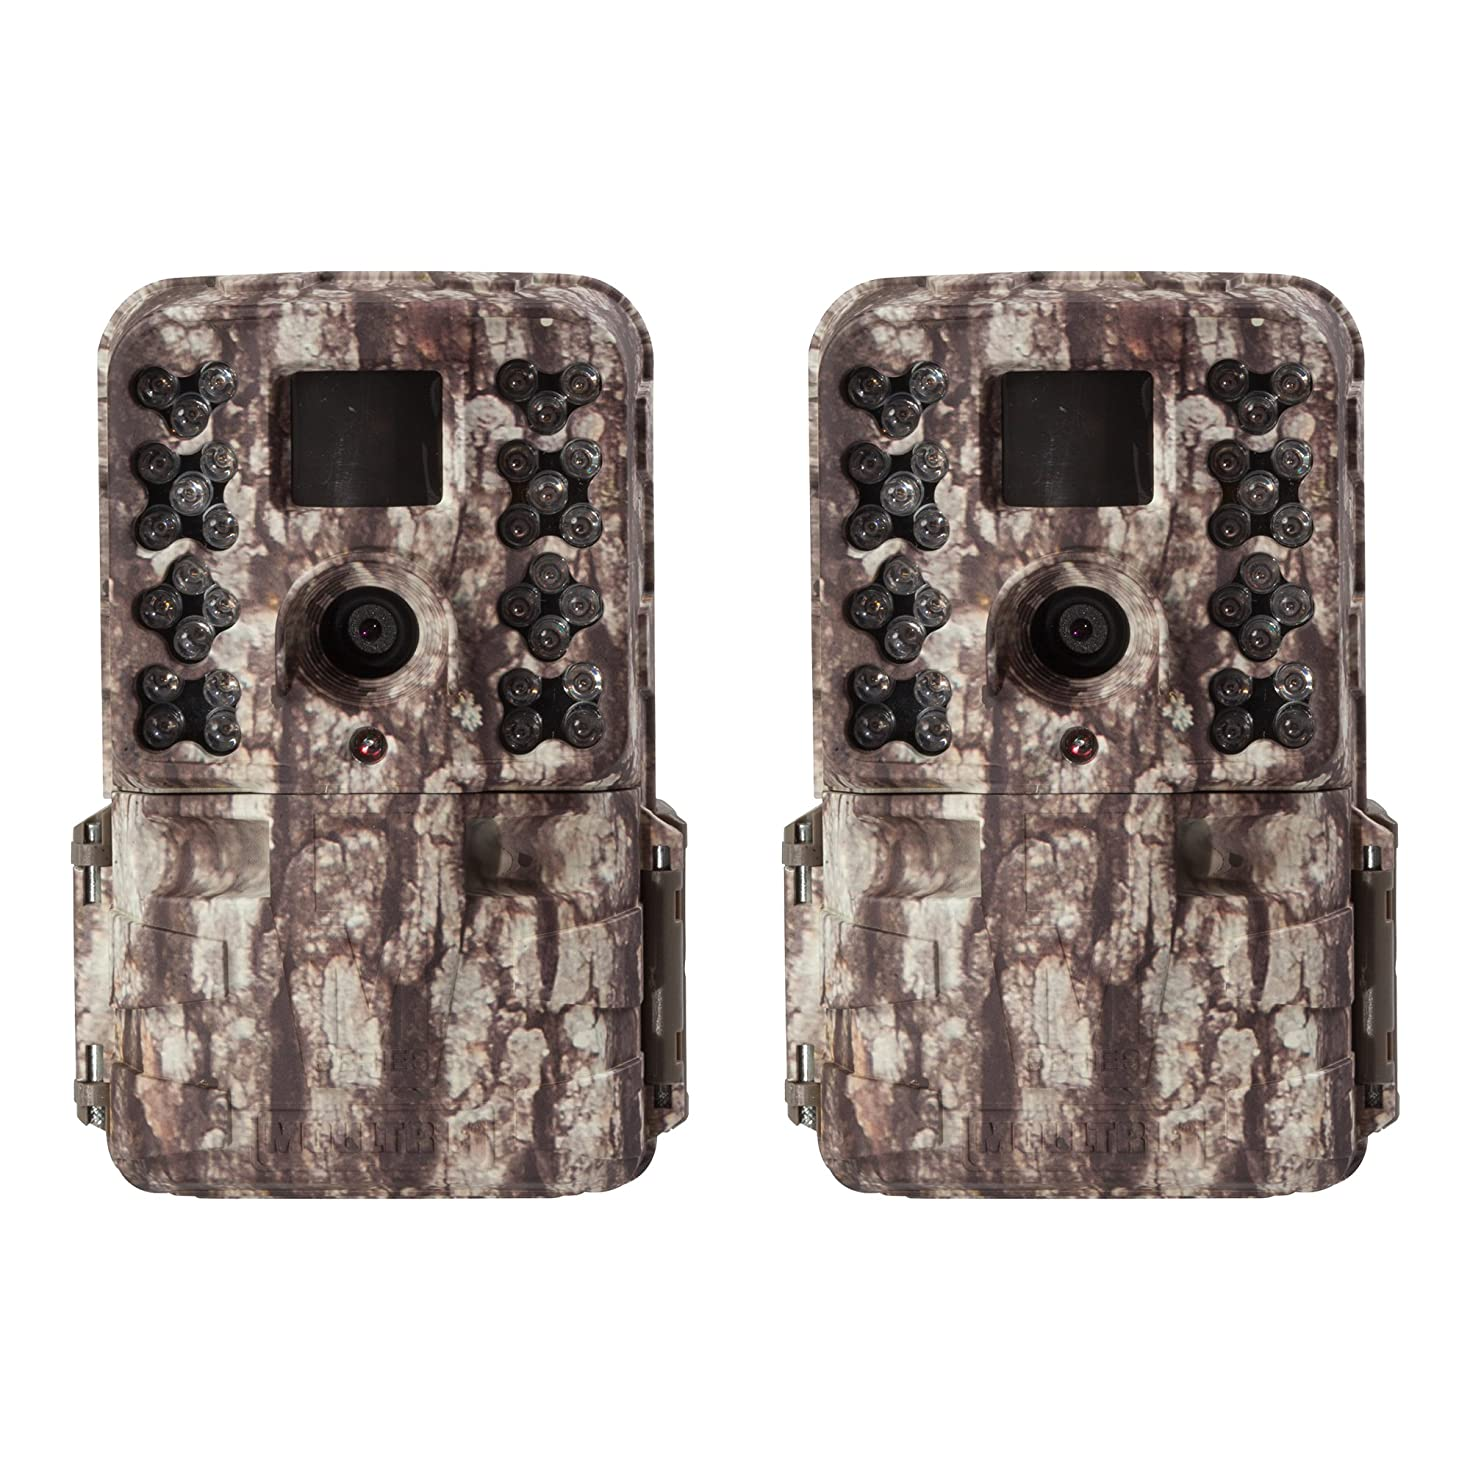 Moultrie M-40 16MP 80' FHD Video Infrared Game Trail Camera, 2 Pack   MCG-13181